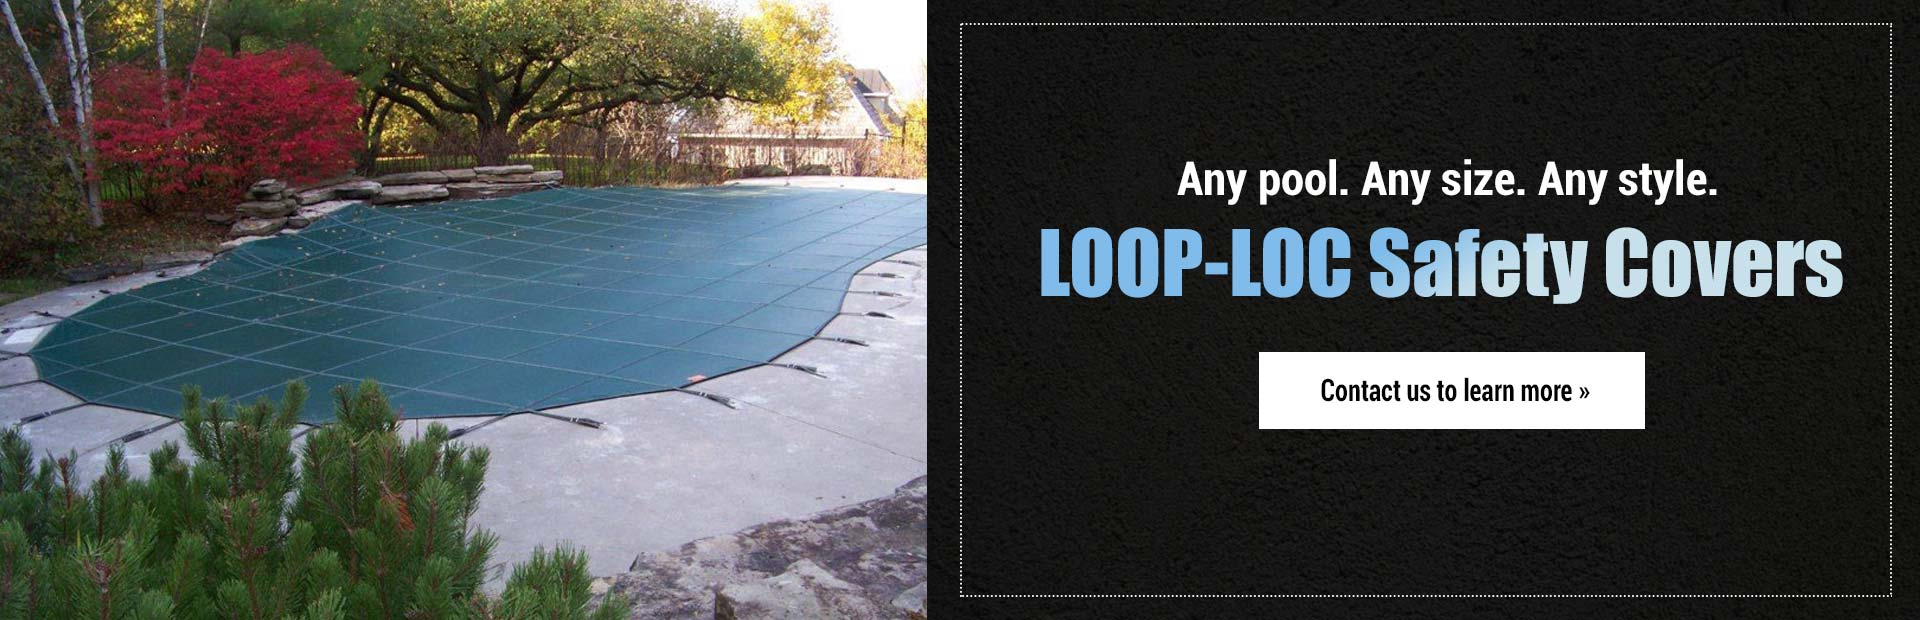 Any pool. Any size. Any style.